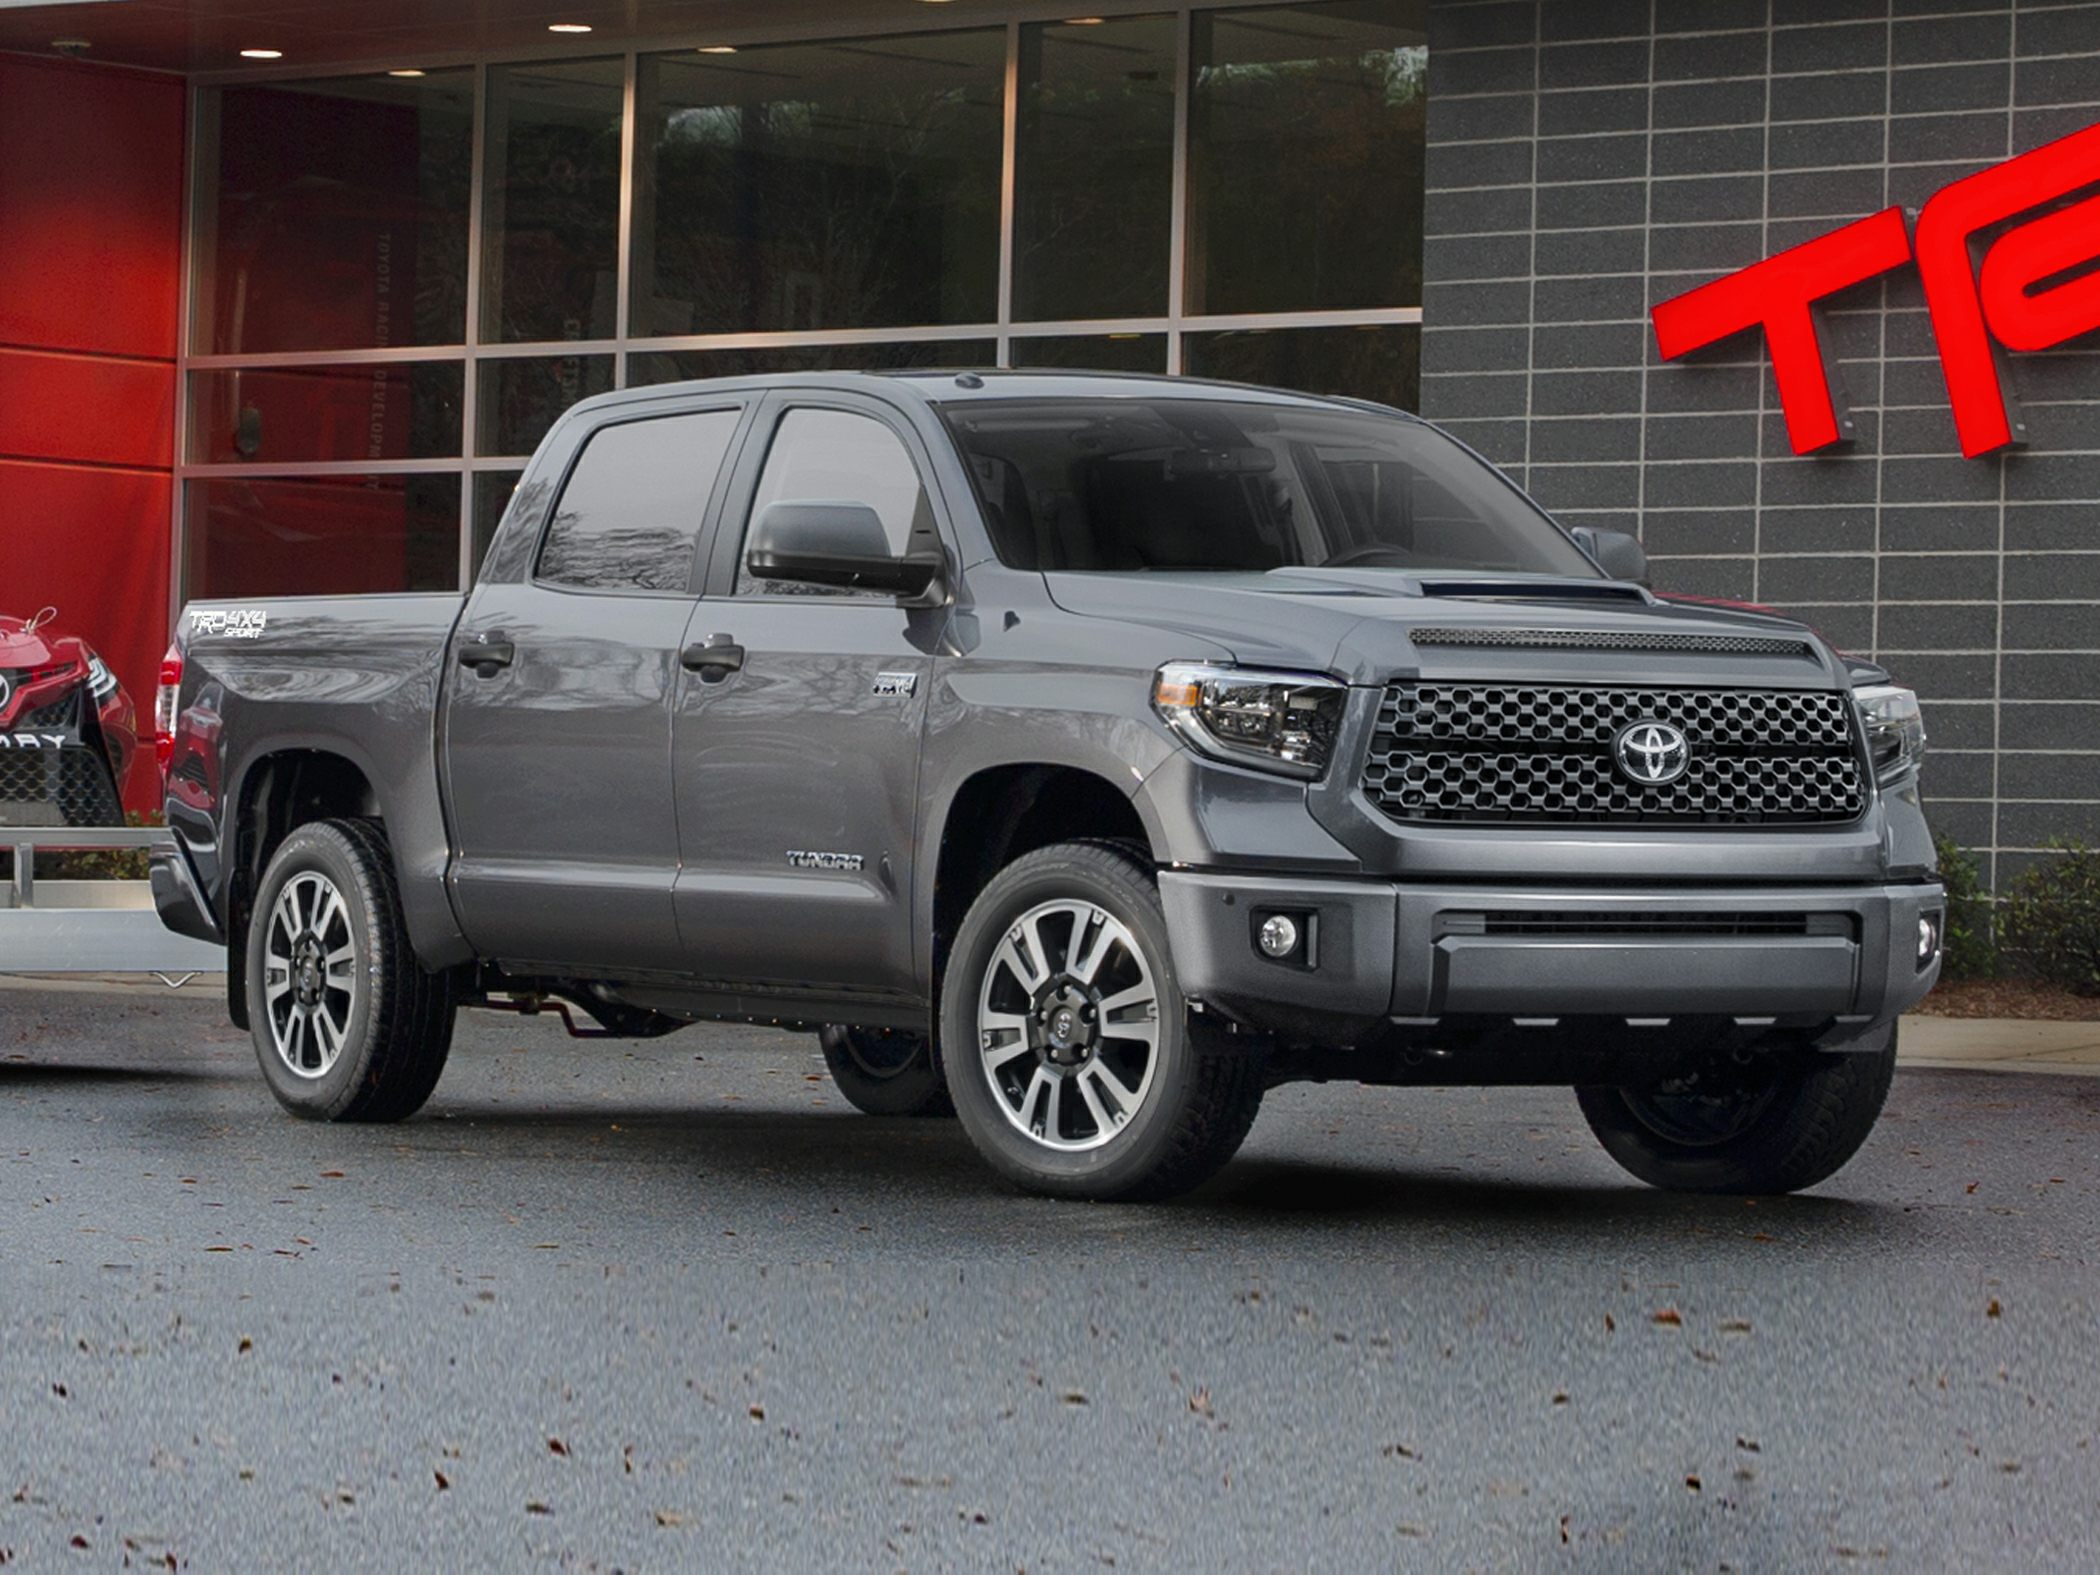 Tundra Short Bed >> 2018 Toyota Tundra Deals, Prices, Incentives & Leases, Overview - CarsDirect